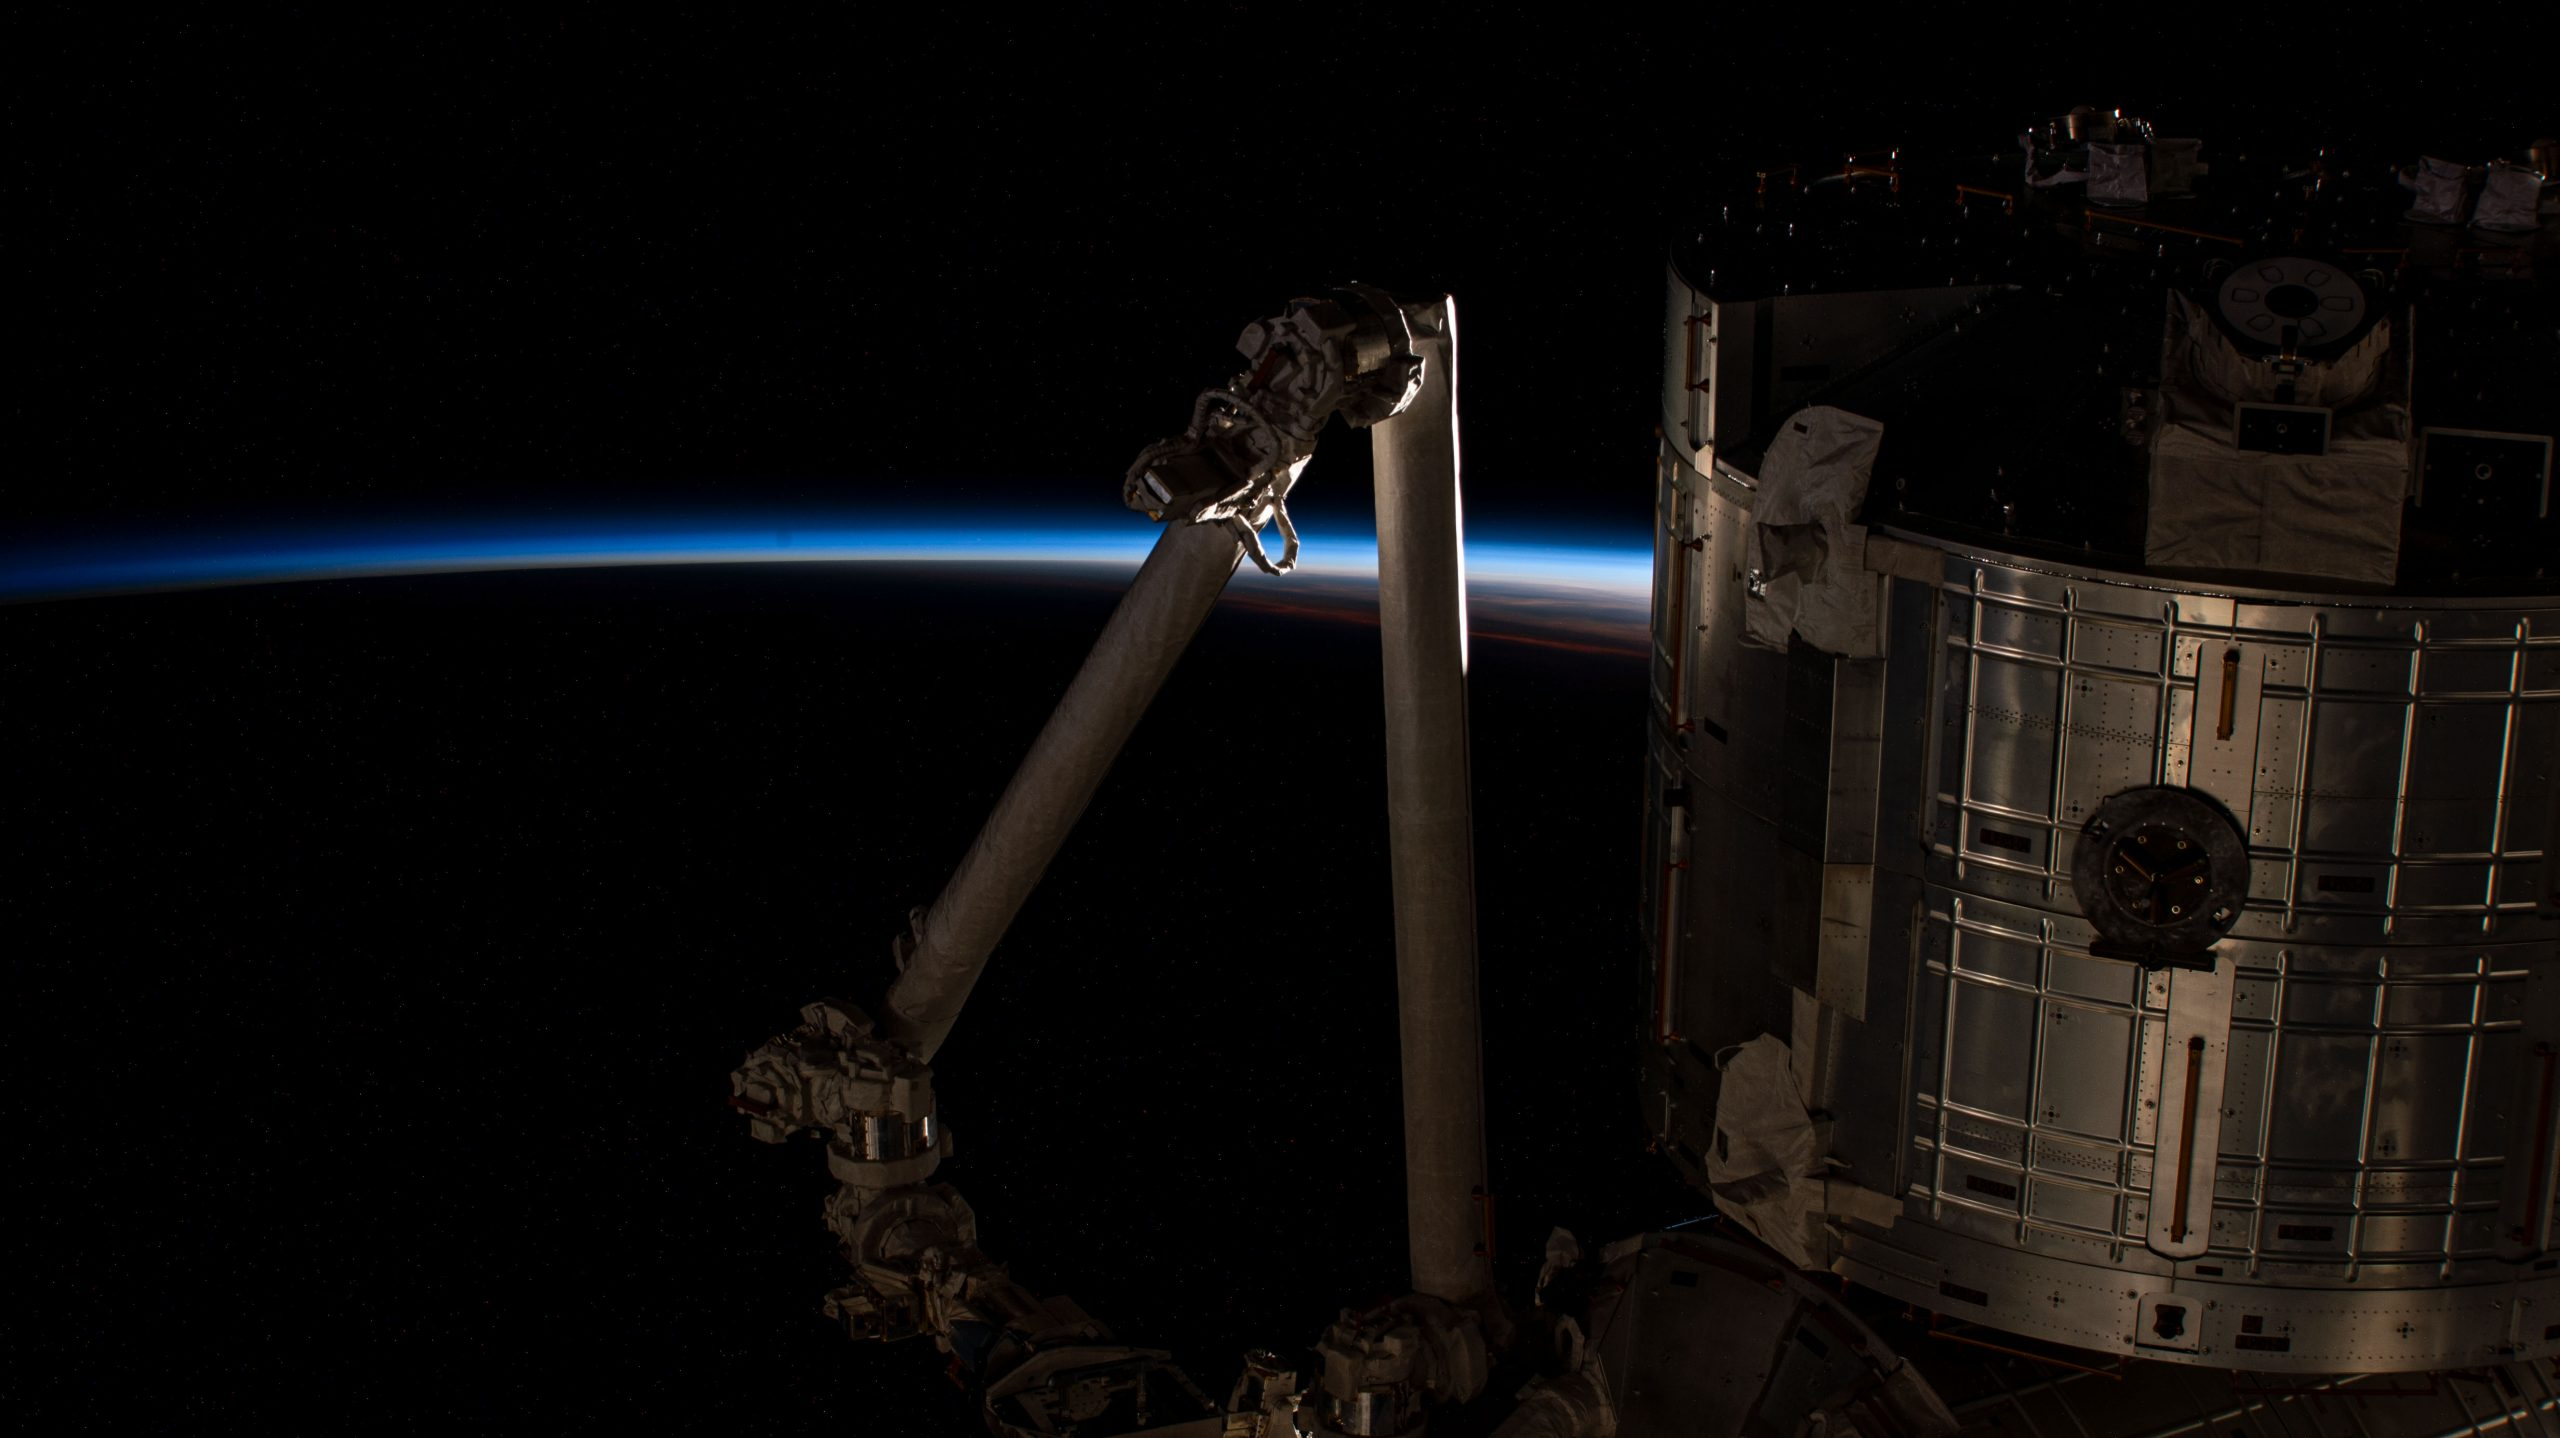 NASA Awards Universities $1.4M for Space Station, Suborbital Research